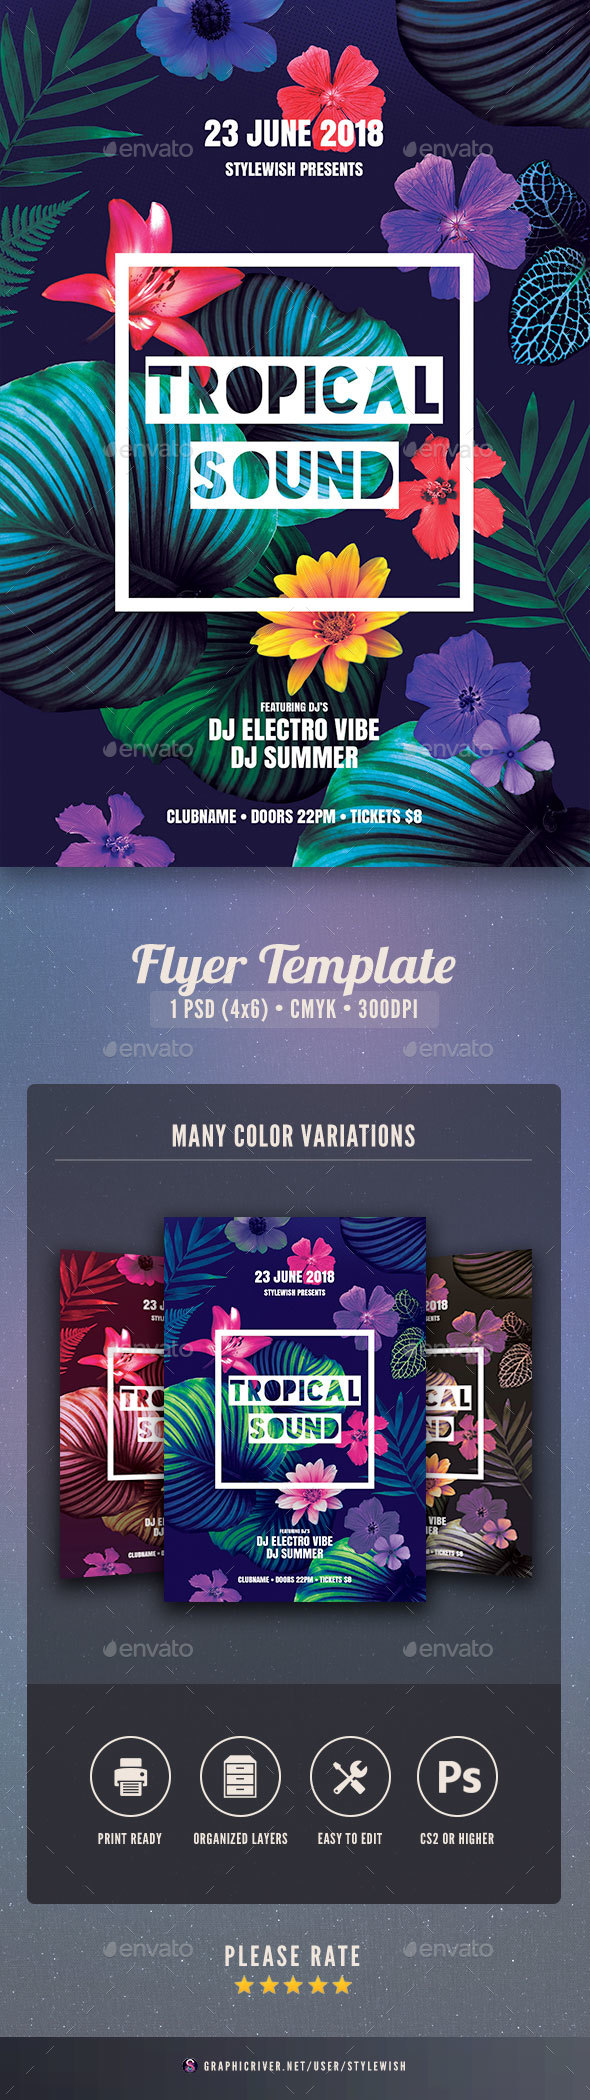 Tropical Sound Flyer - Clubs & Parties Events